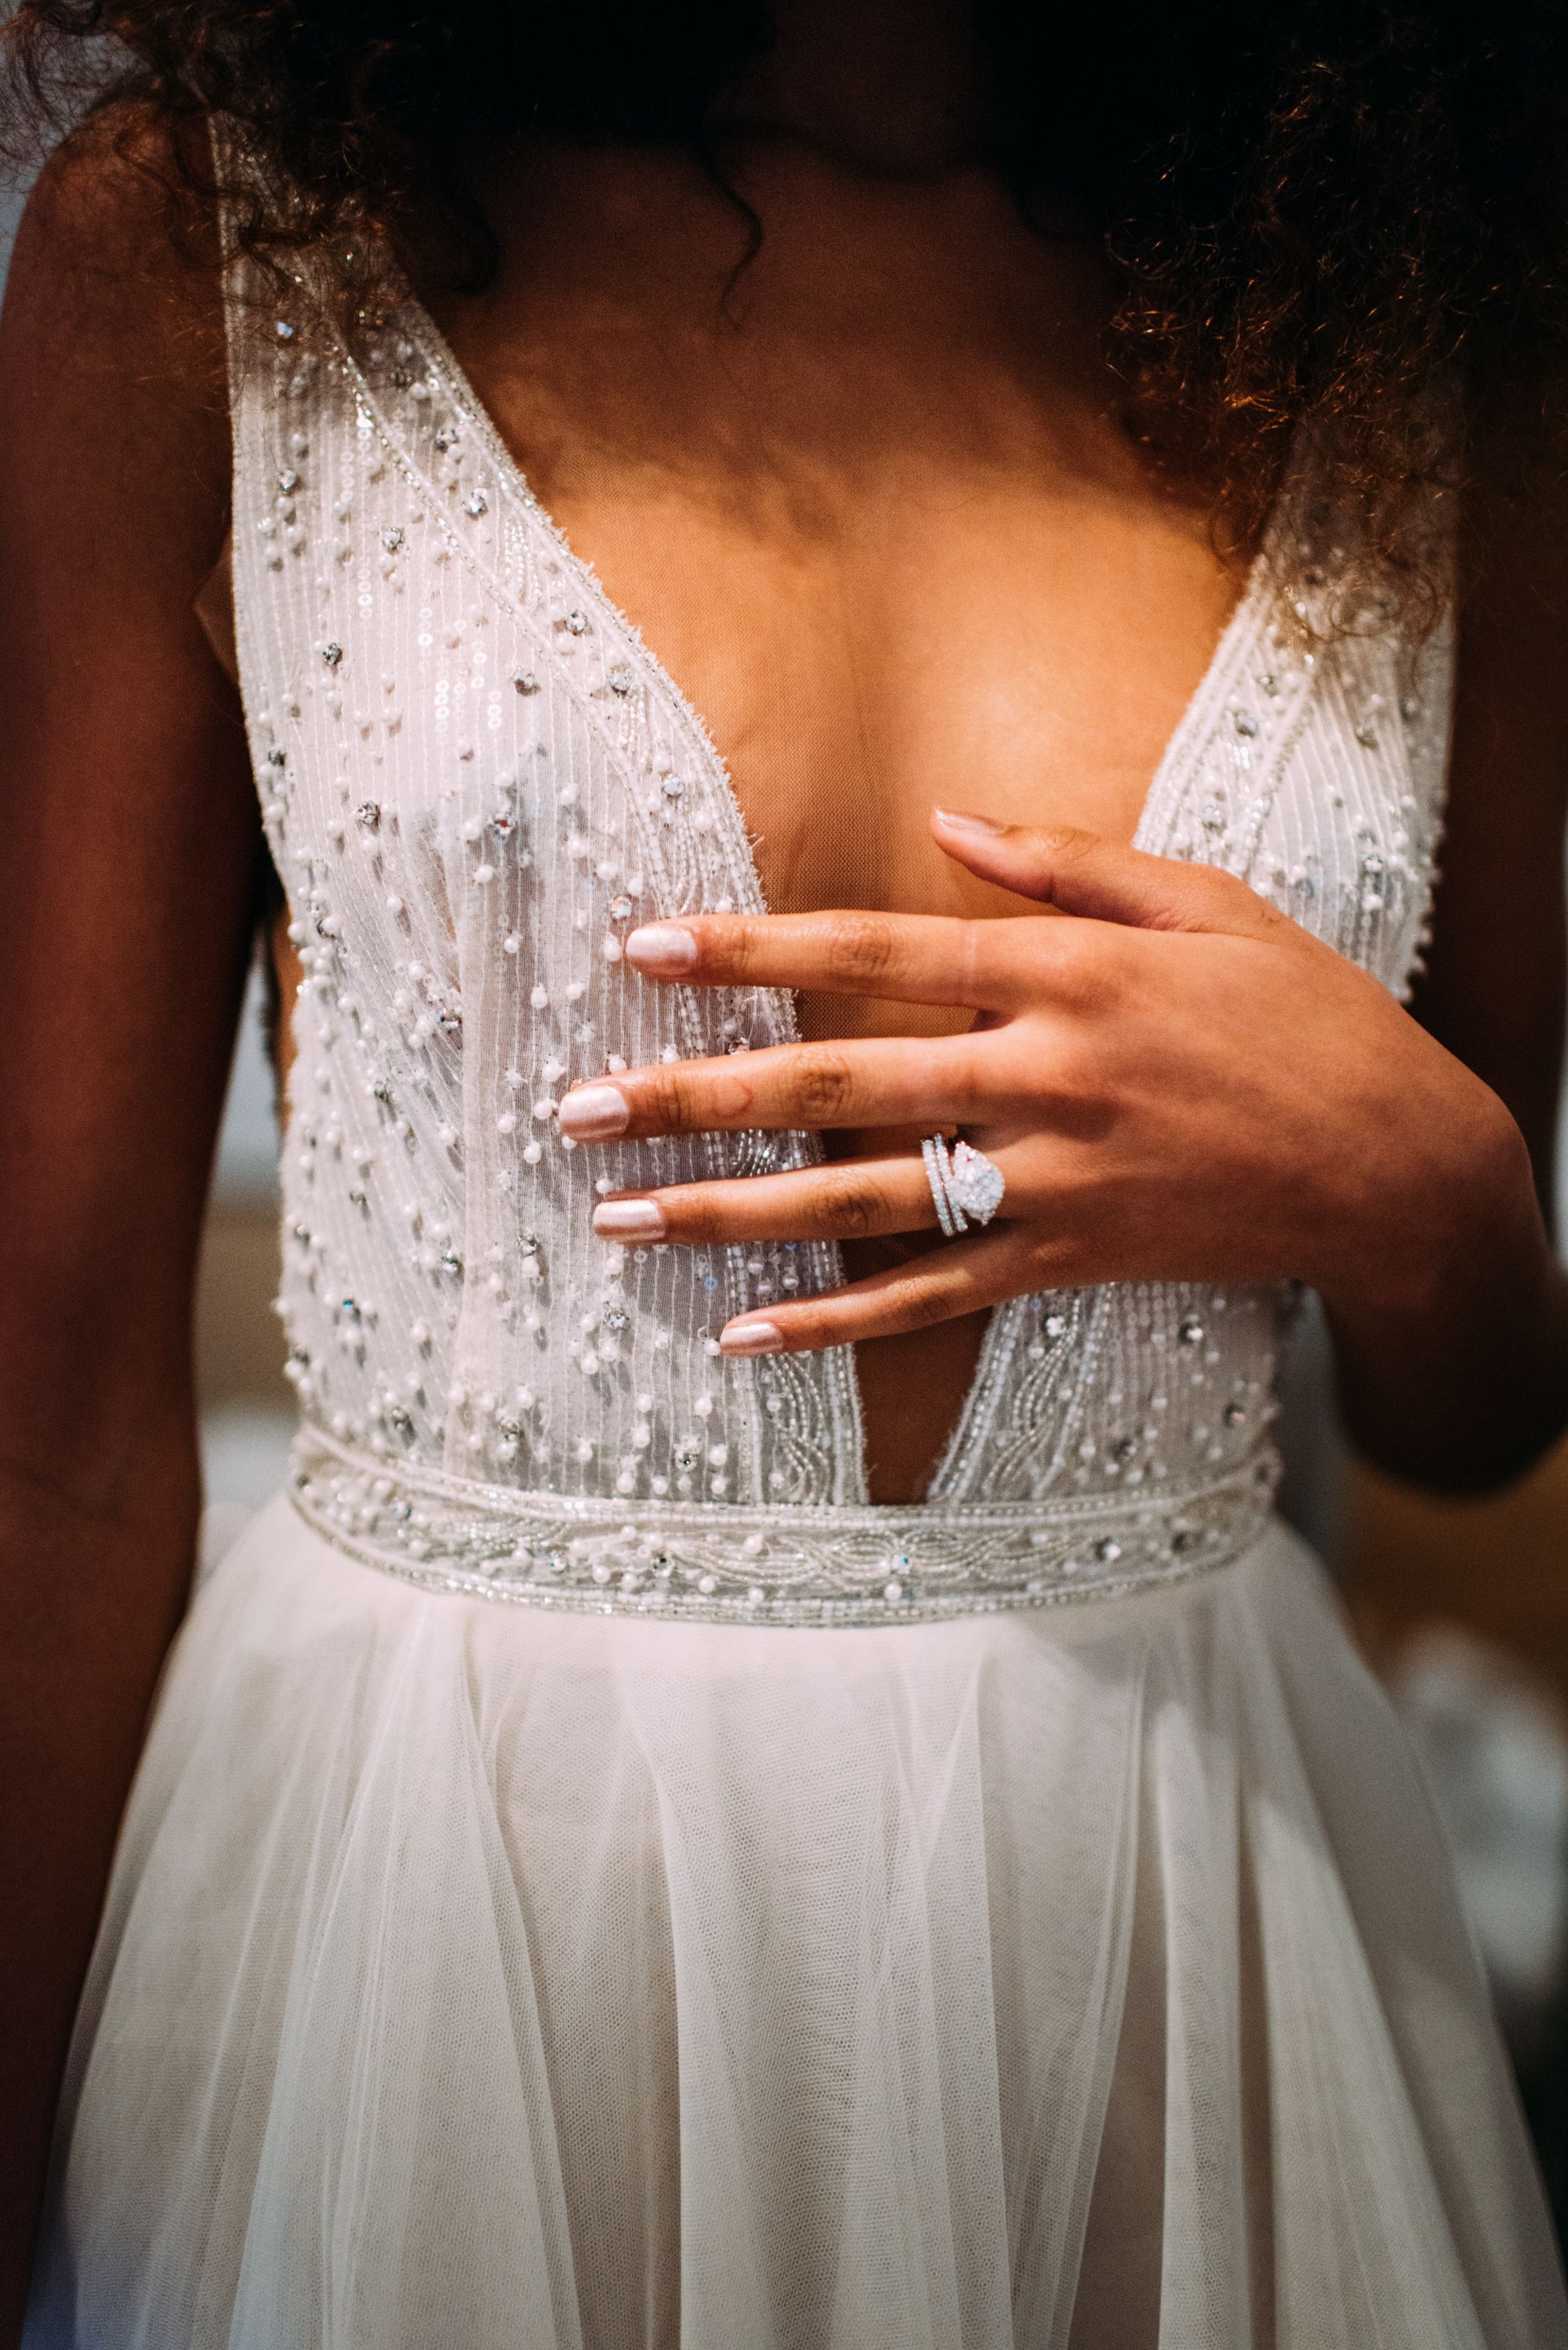 Design your own wedding dress near me  How to Create u Design Your Own Custom Engagement Ring  the perfect